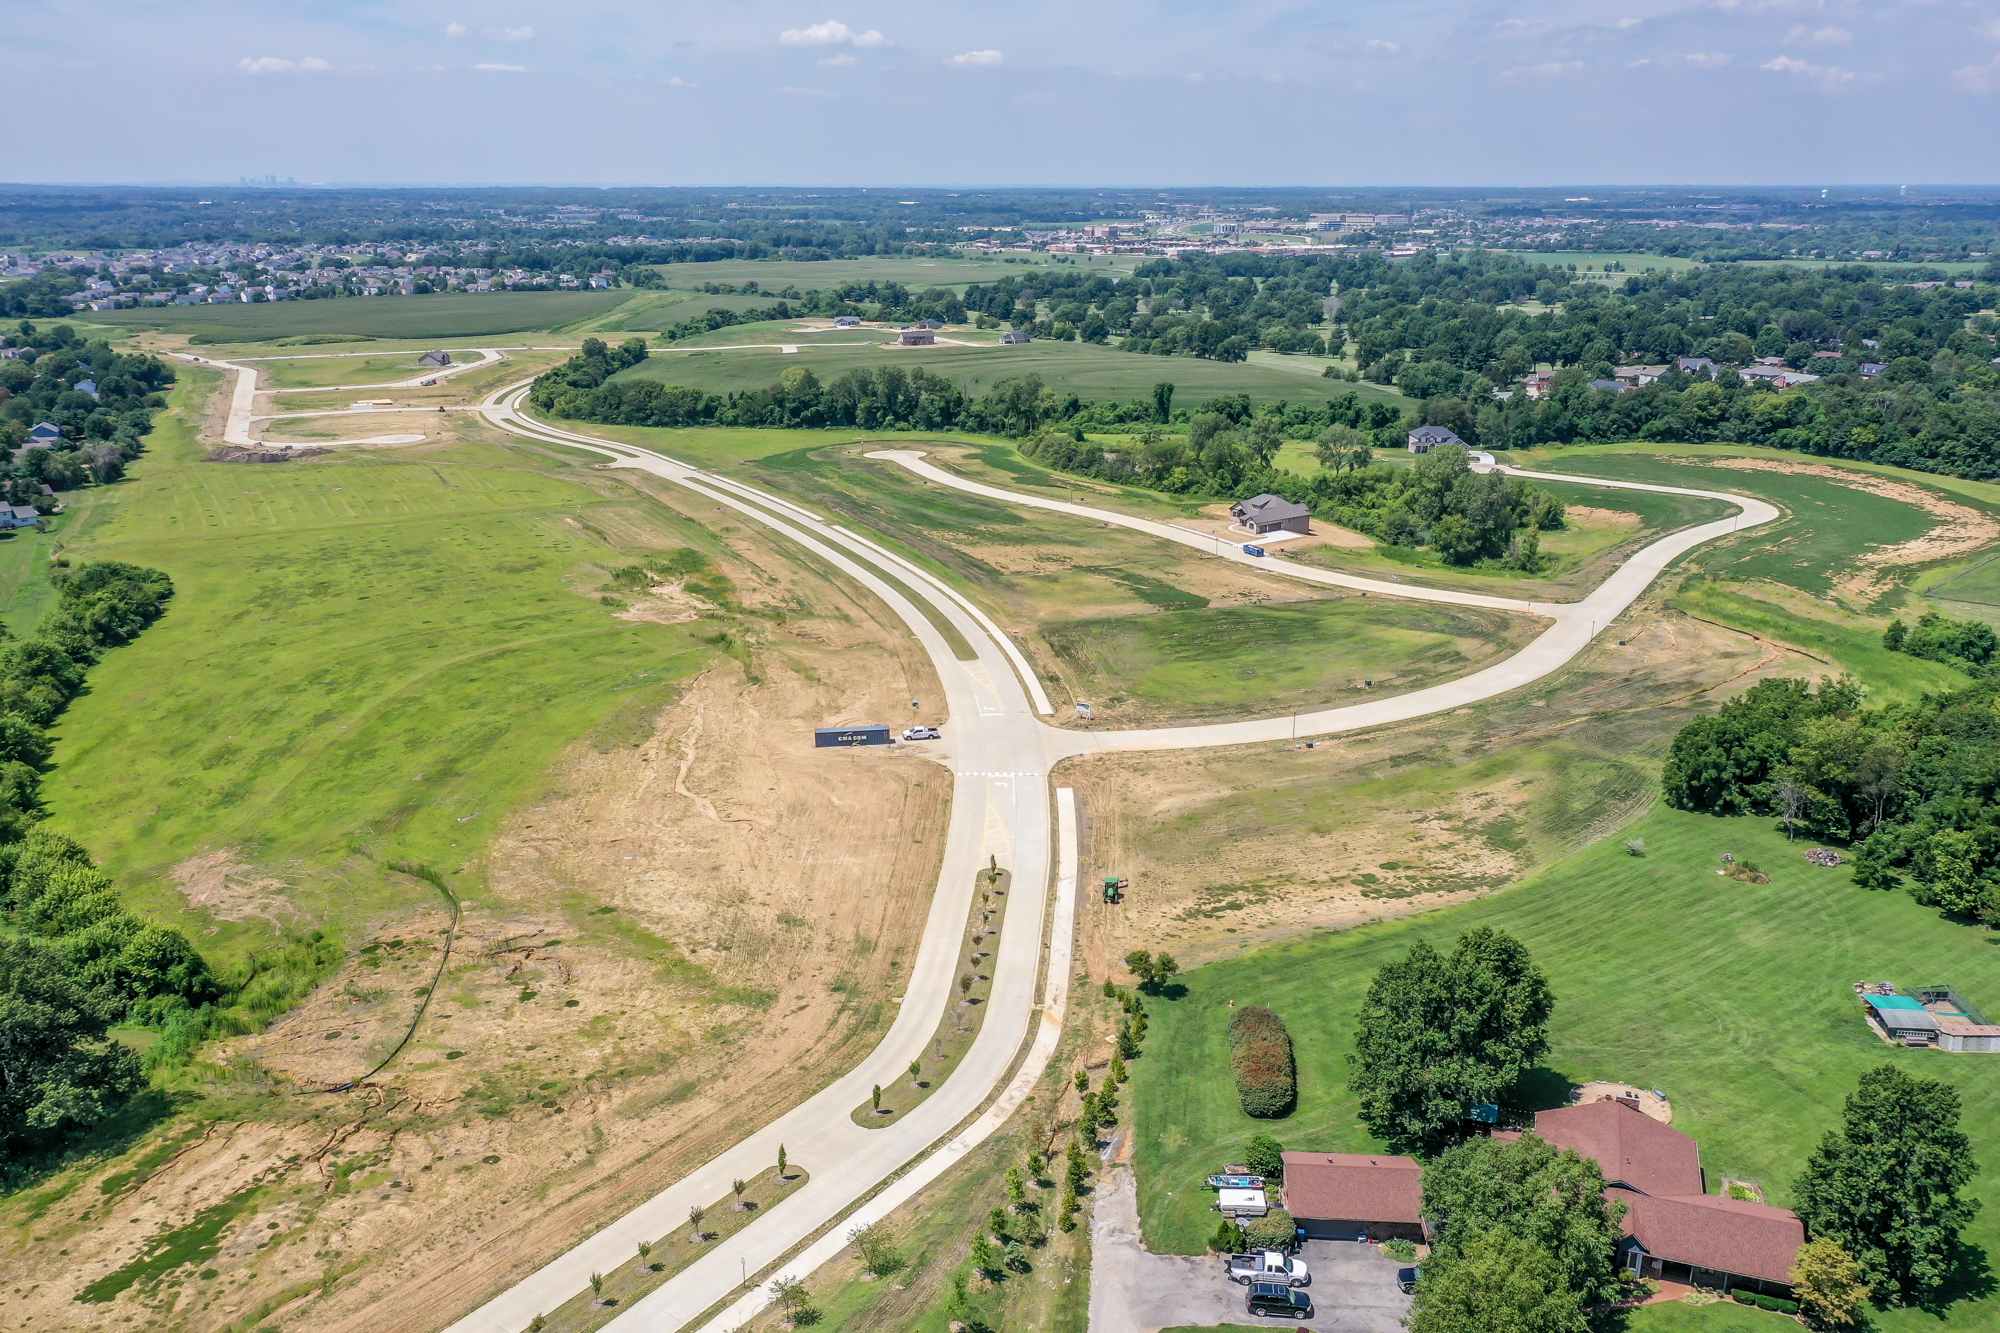 New_Construction_Homes_For_Sale_Shiloh_Illinois_Near_Scott_AFB-37.jpg